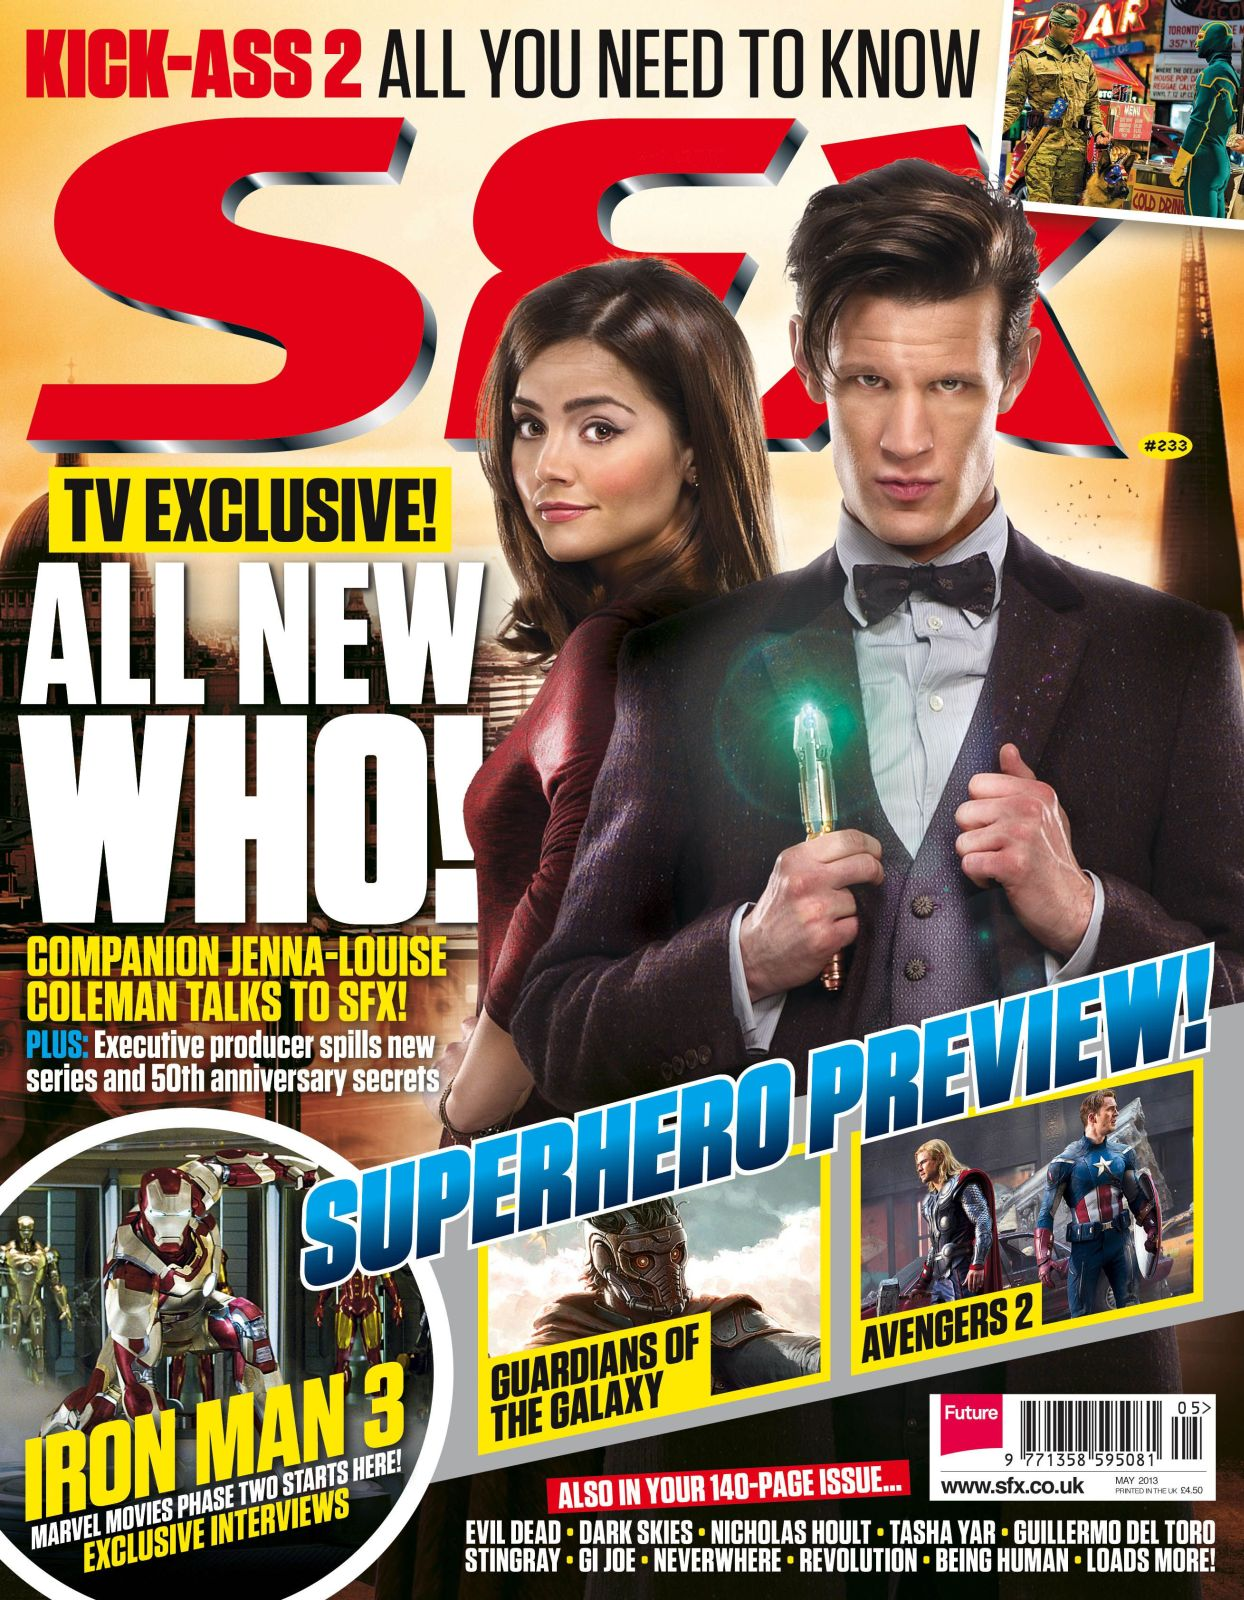 SFX Issue 233, published March 2013